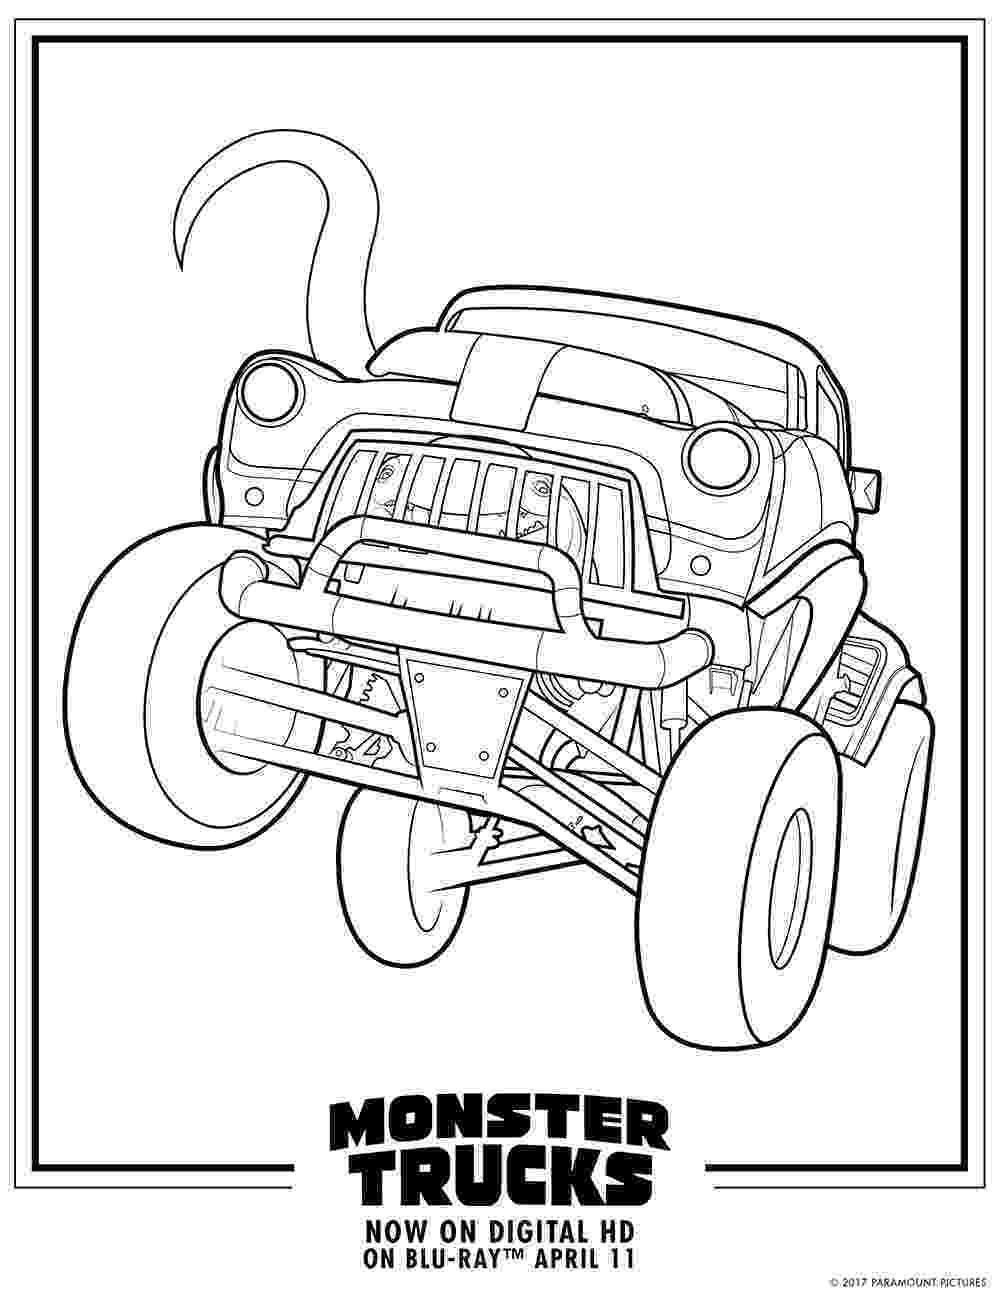 free monster truck coloring pages to print free printable monster truck coloring pages for kids coloring print to free pages monster truck